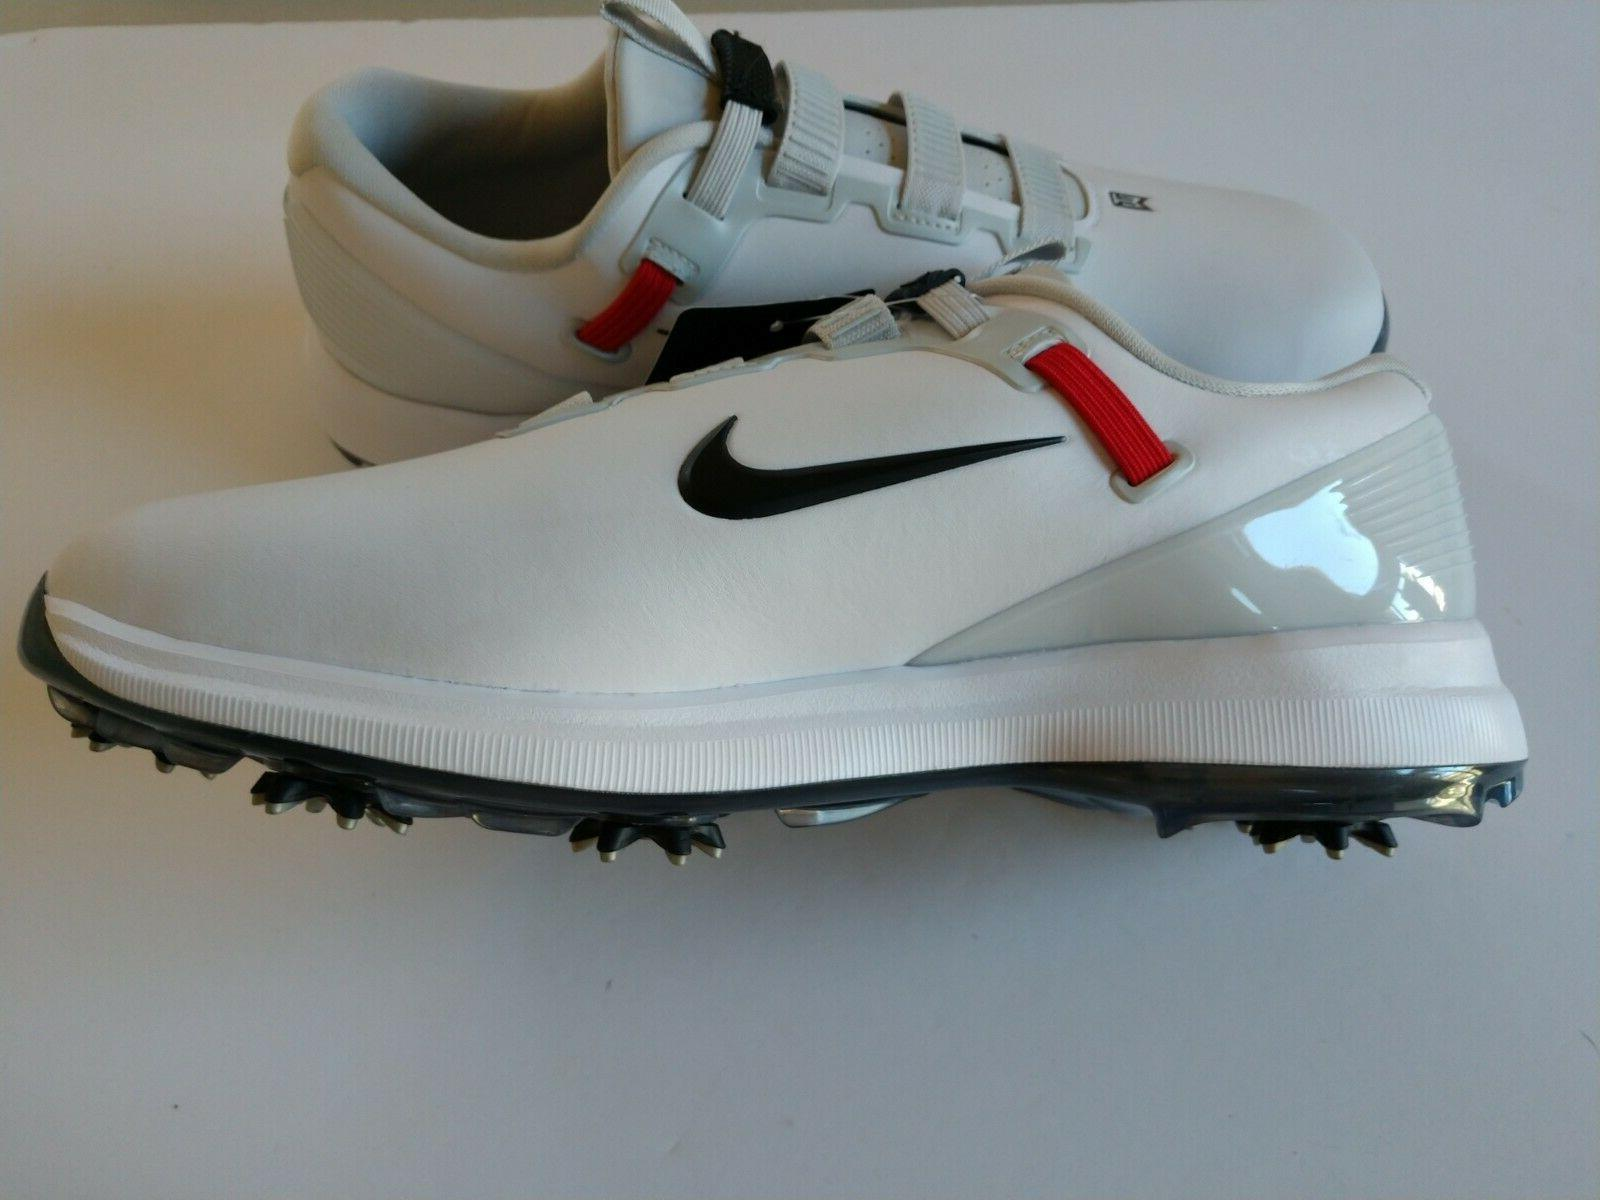 Nike Woods TW71 Fastfit Shoes White sz 11.5 CD6300-100